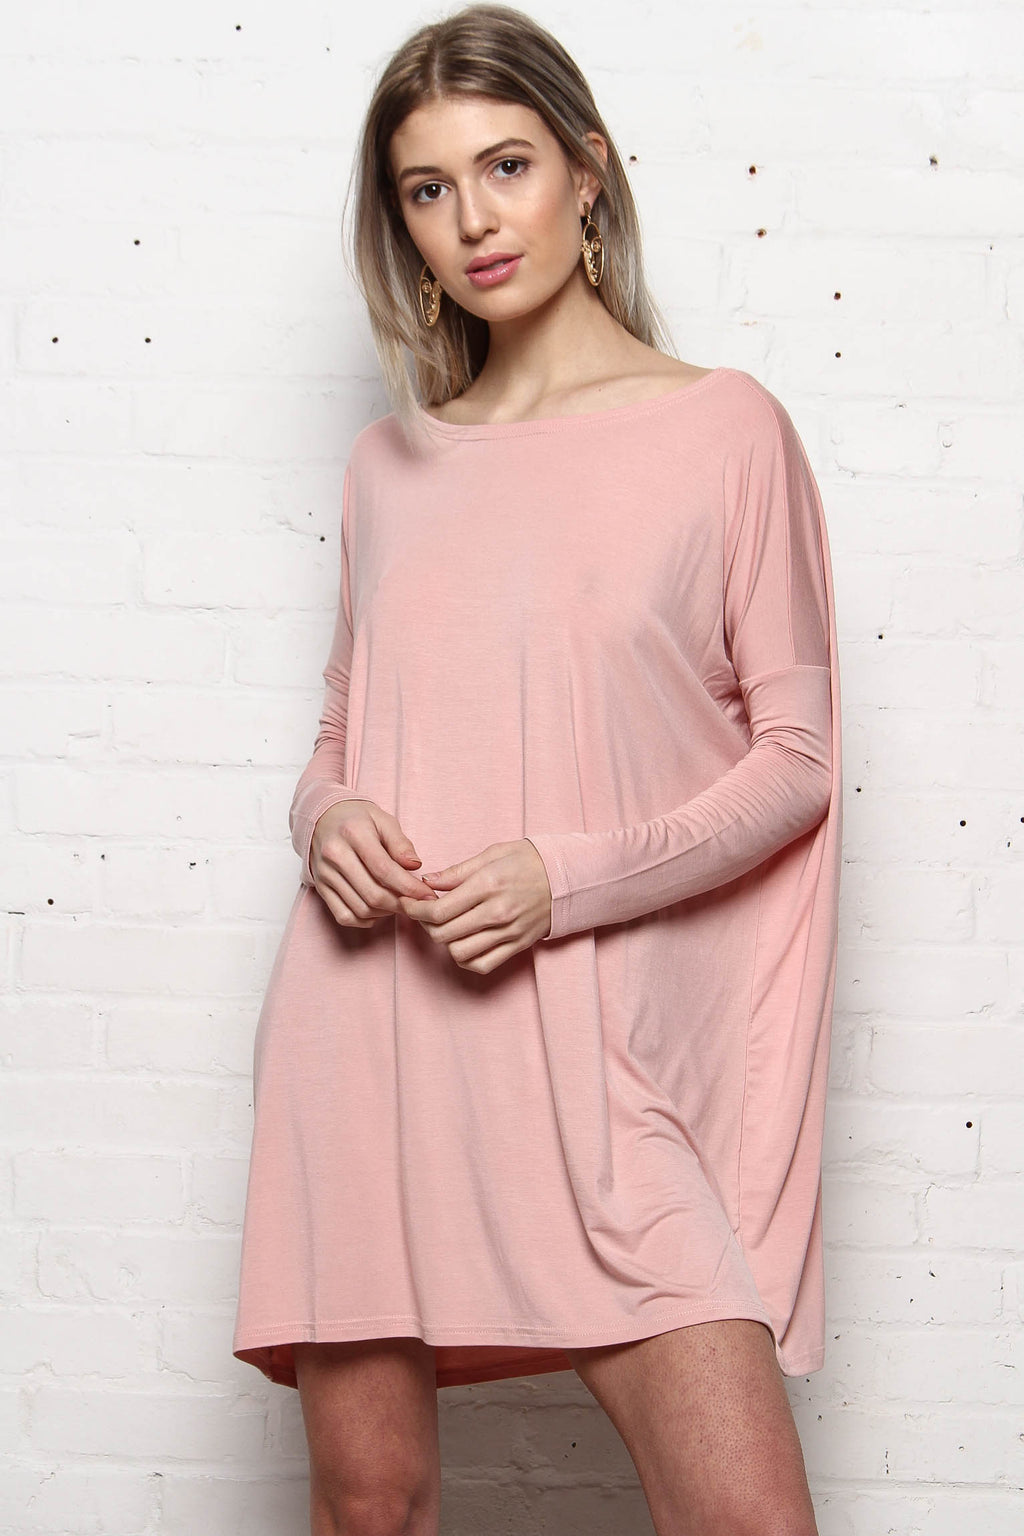 Easy Does It Everyday Tunic Dress - Blush